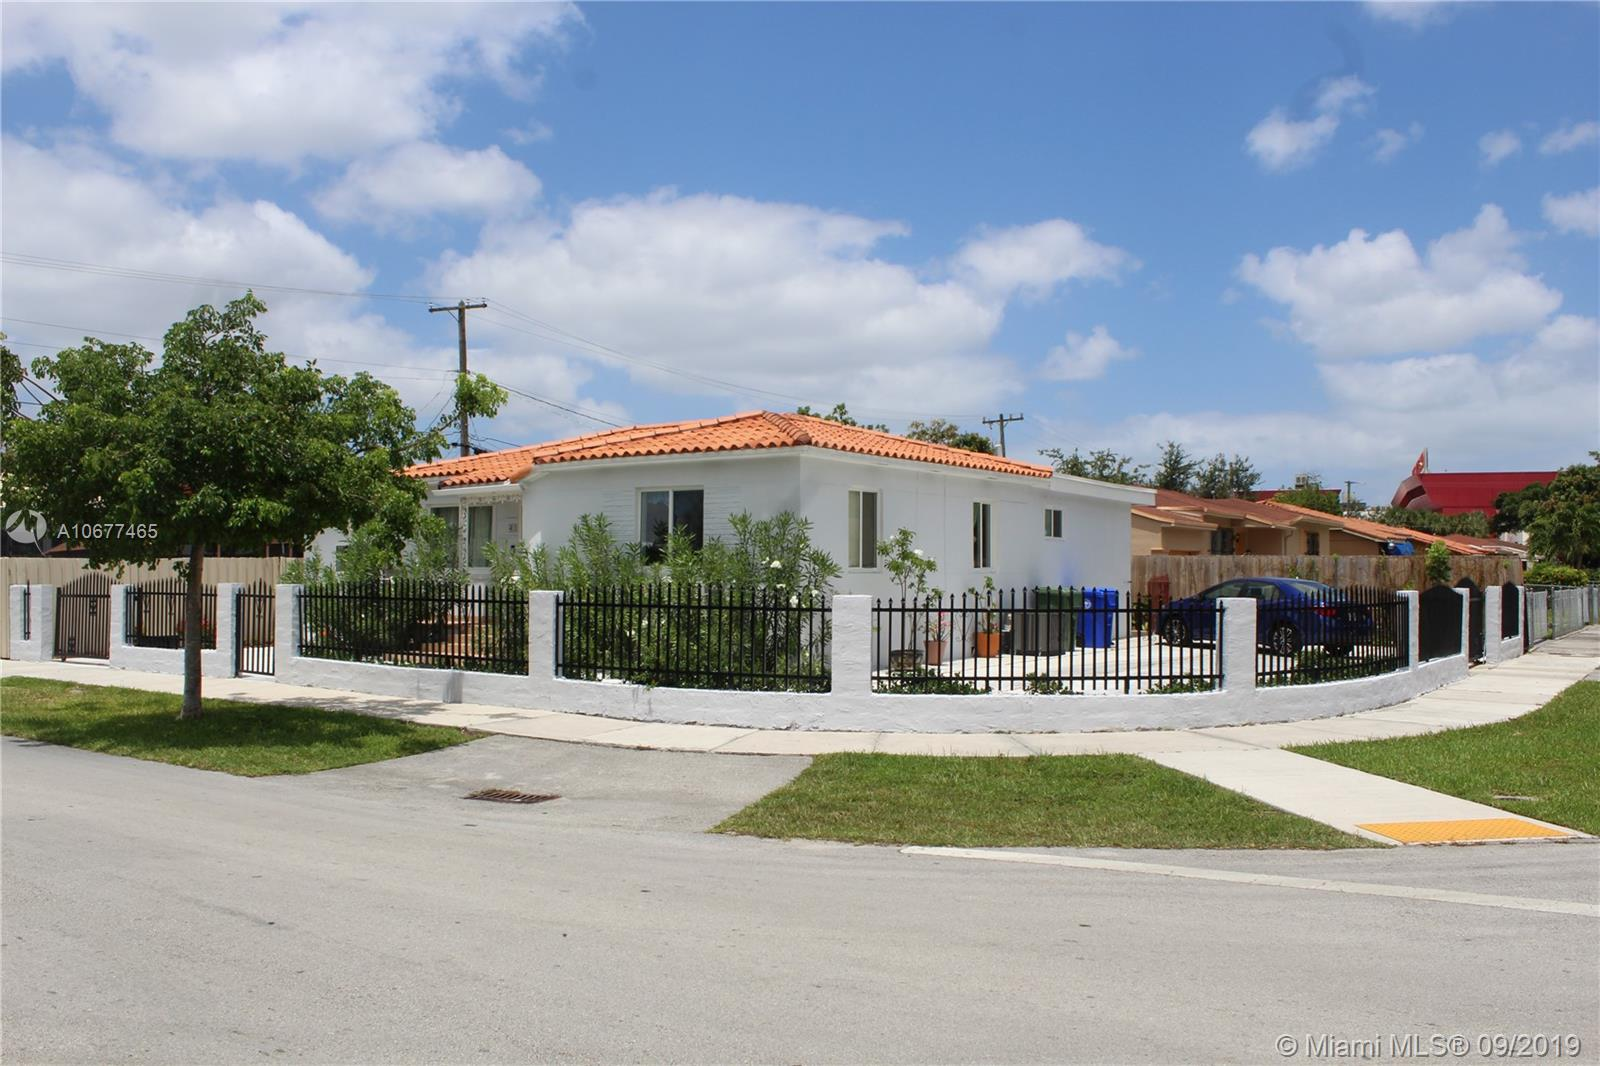 401 NW 39th Ave, Miami, FL 33126